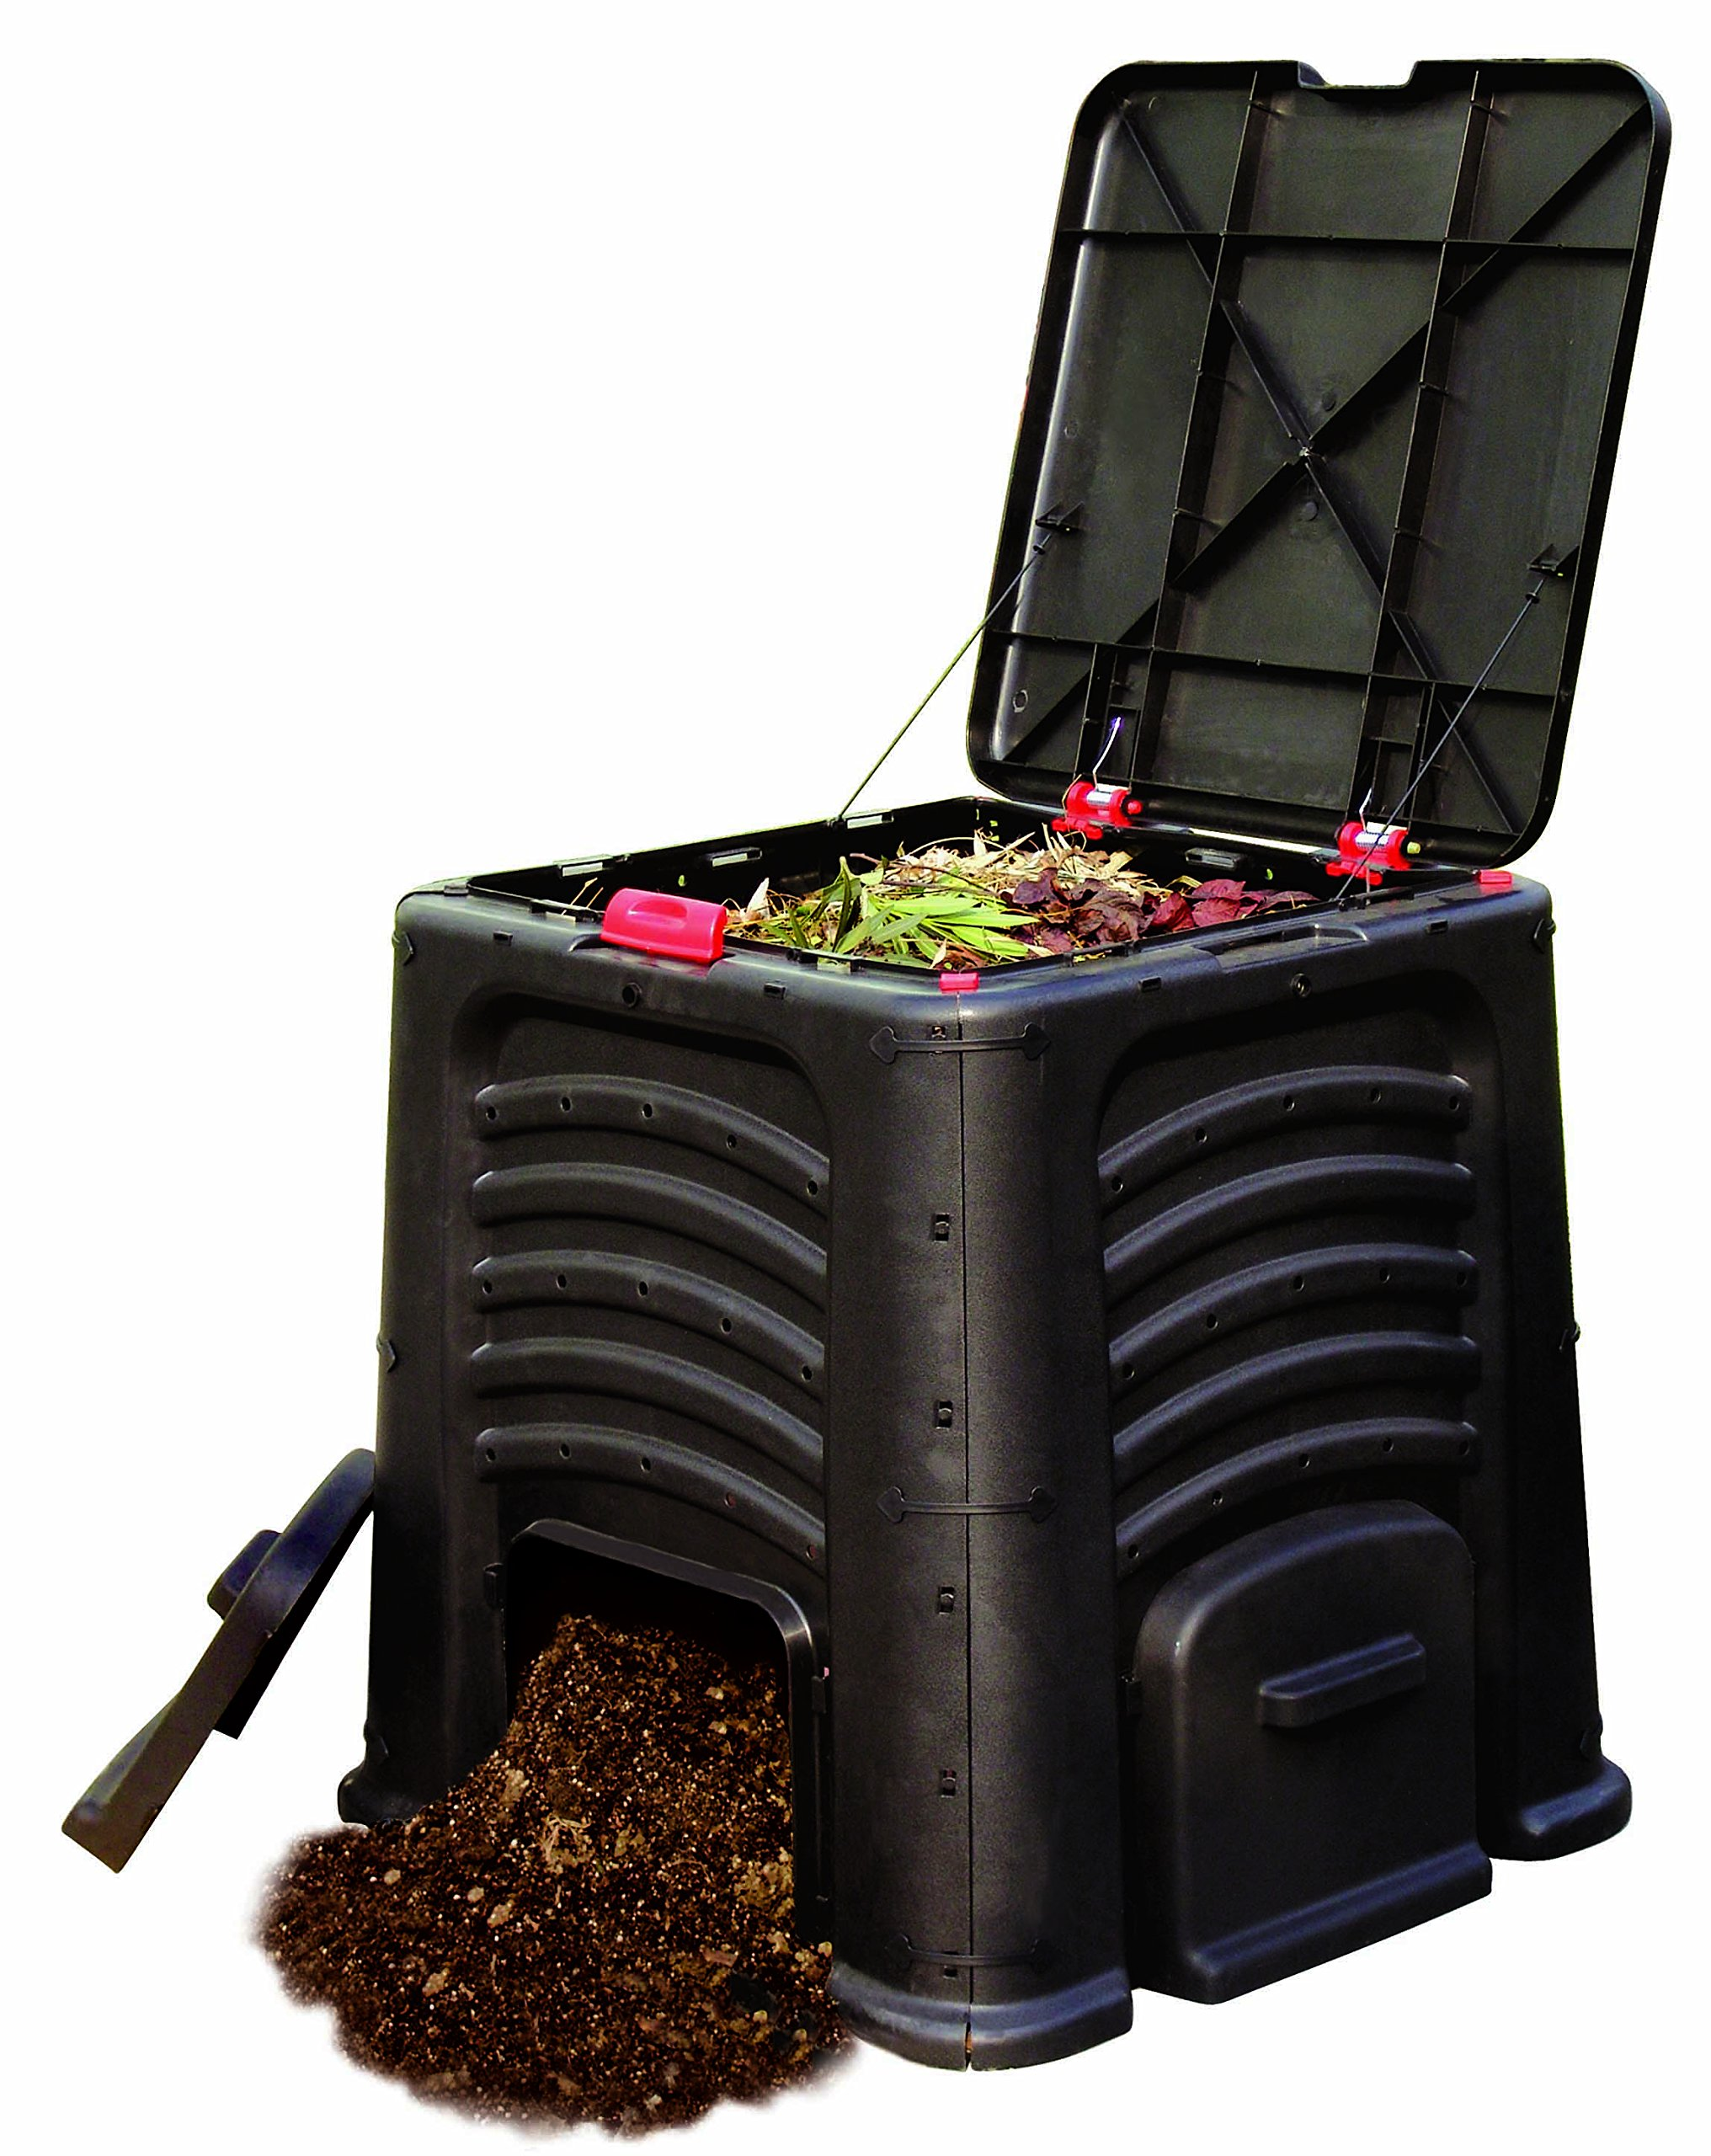 Tierra Garden 9491 115-Gallon Composter, Made of 90-Percent Recycled Material